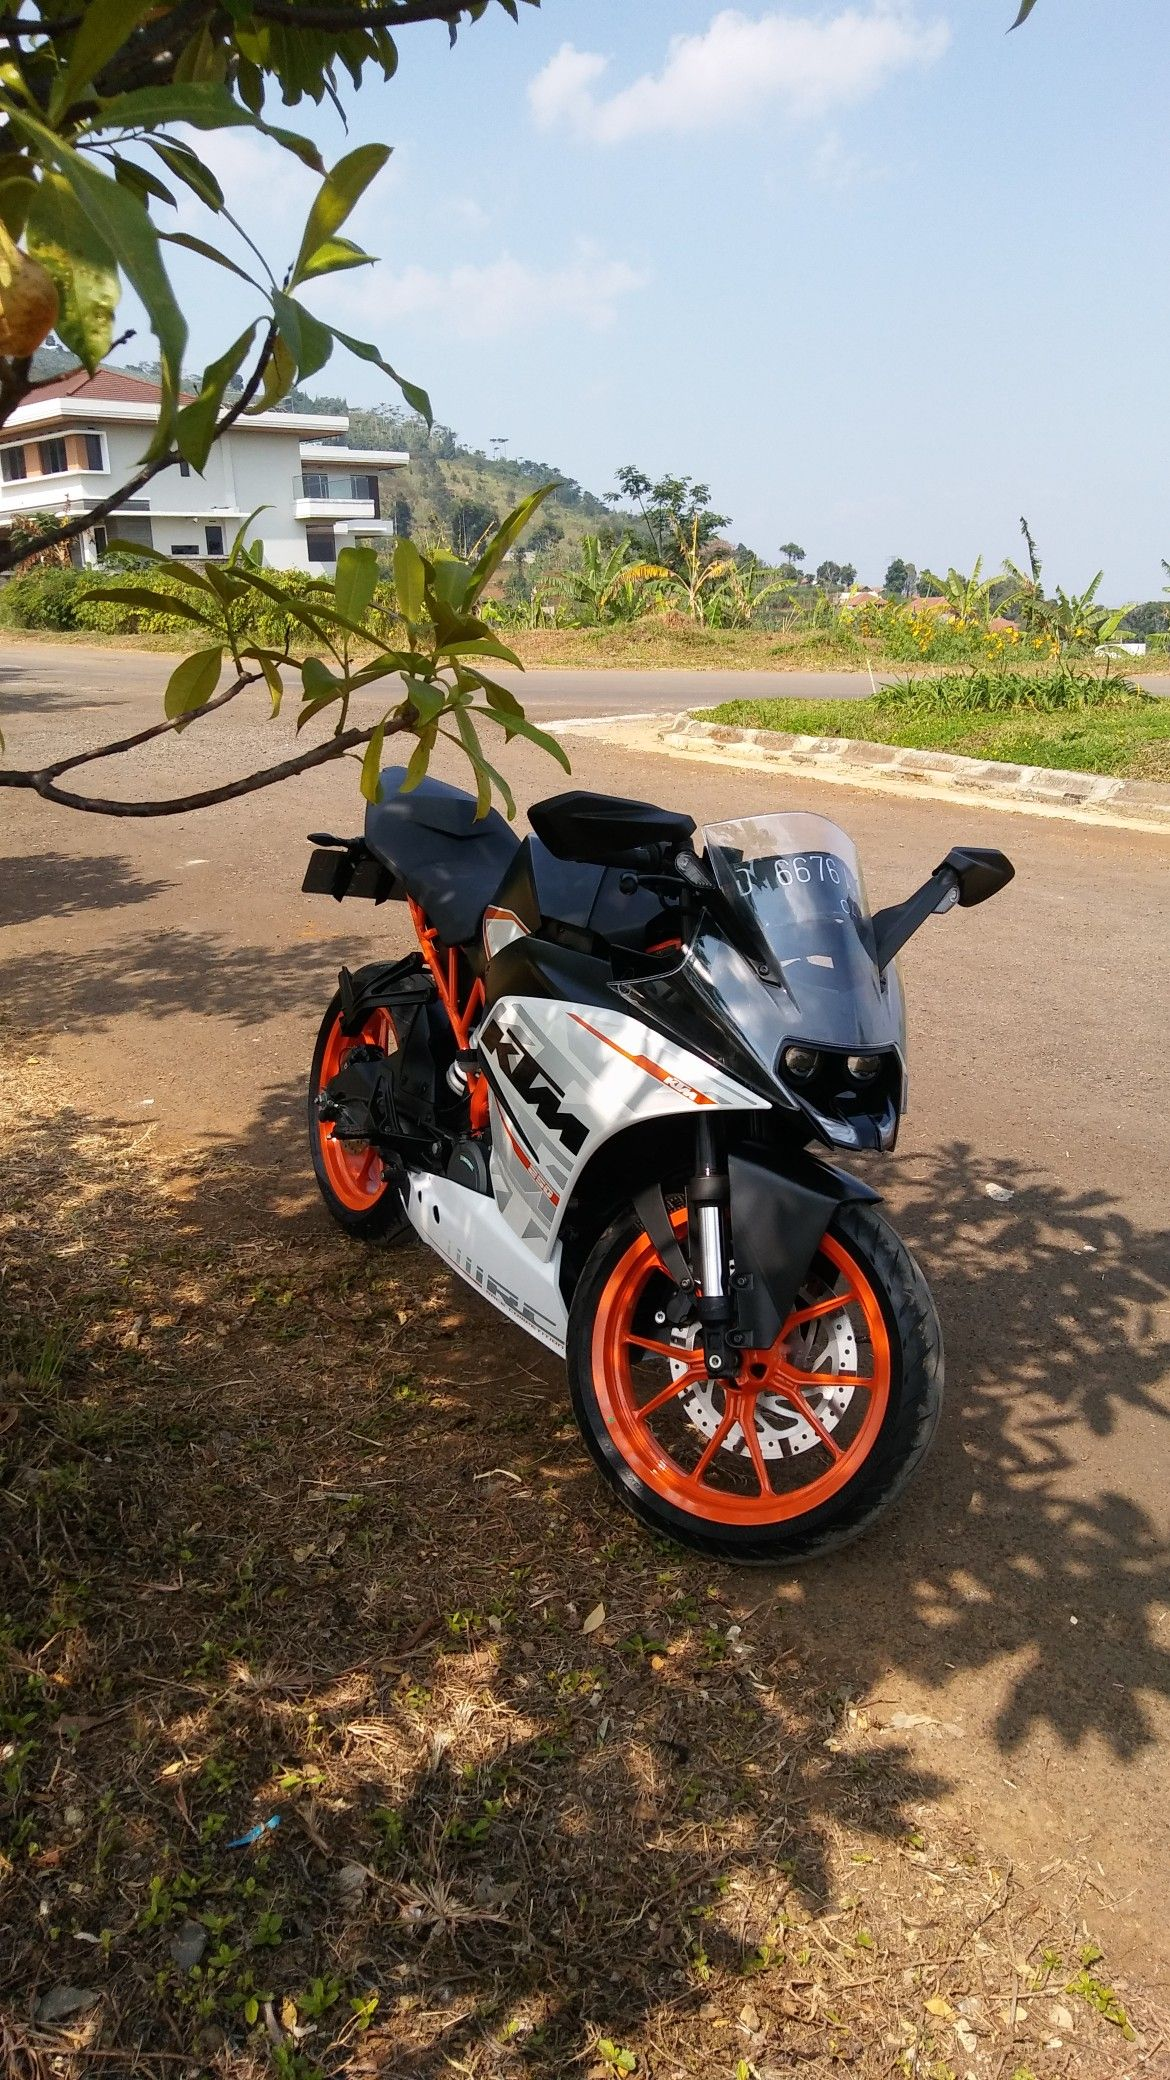 Pin By Meet Katua On Bikelife Ktm Ktm Rc Cafe Racer Moto